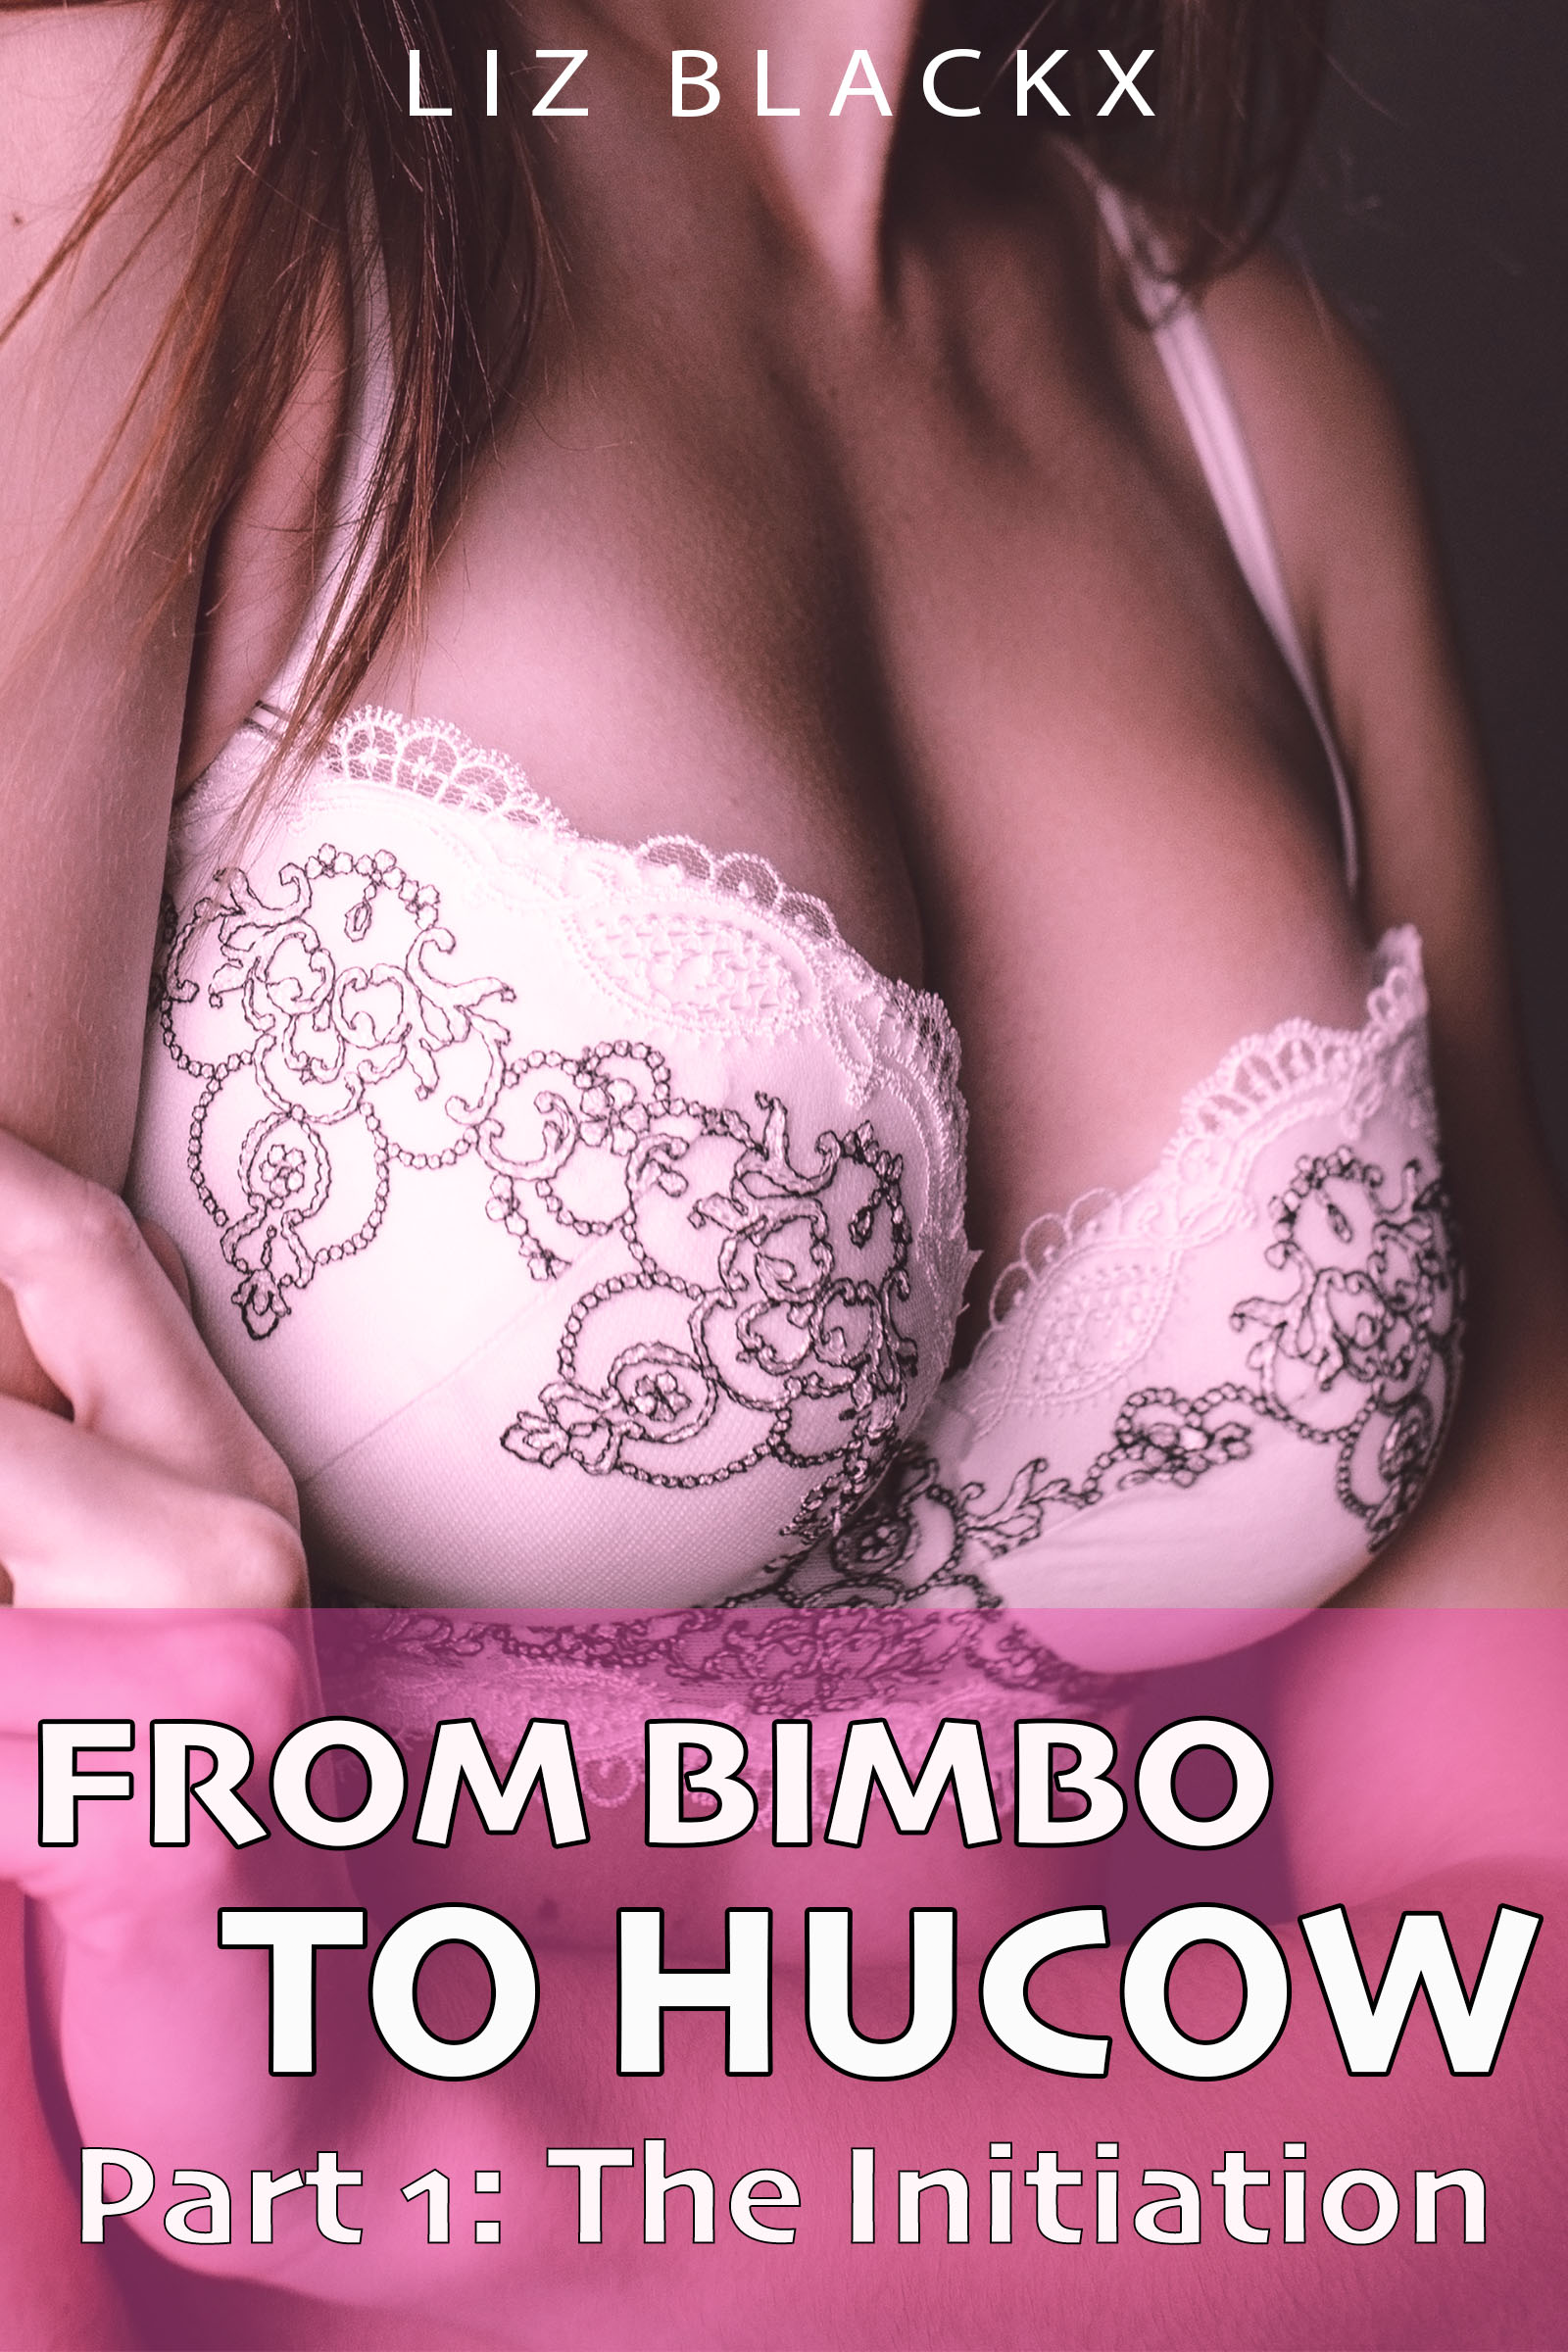 New Release: 'From Bimbo To Hucow – The Initiation'